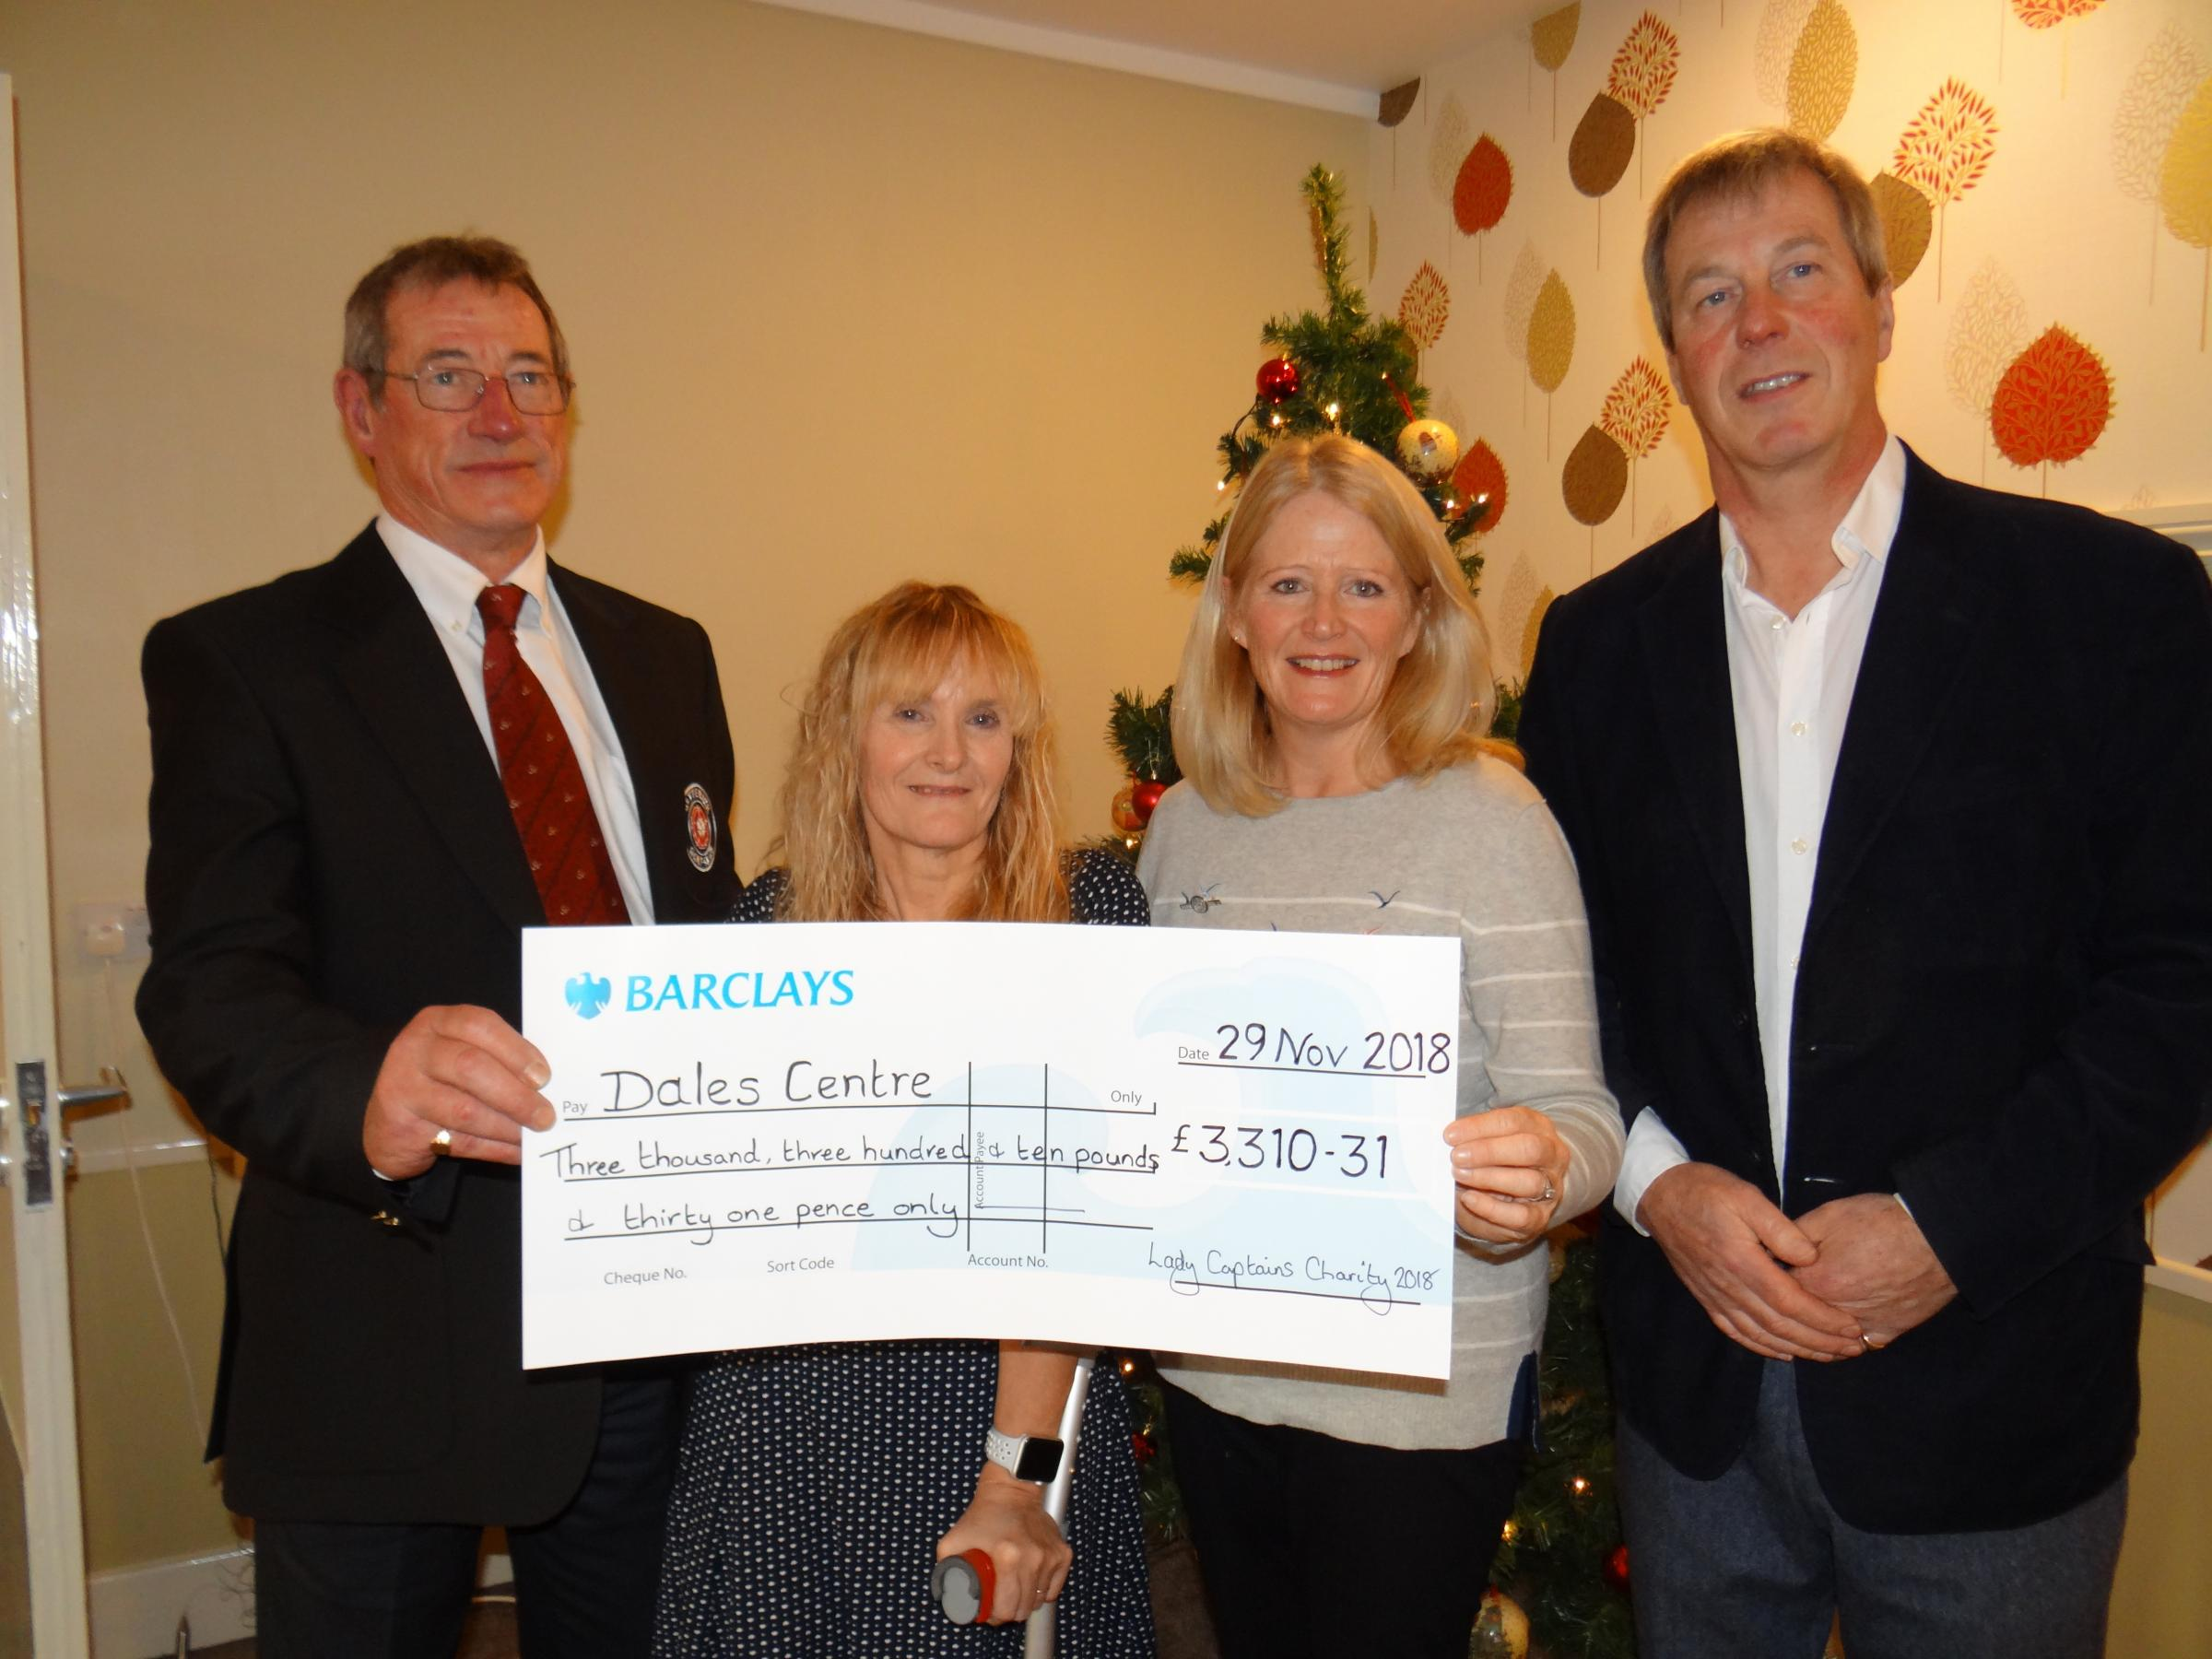 DALES CENTRE: Money raised by Catterick lady golfers is handed over